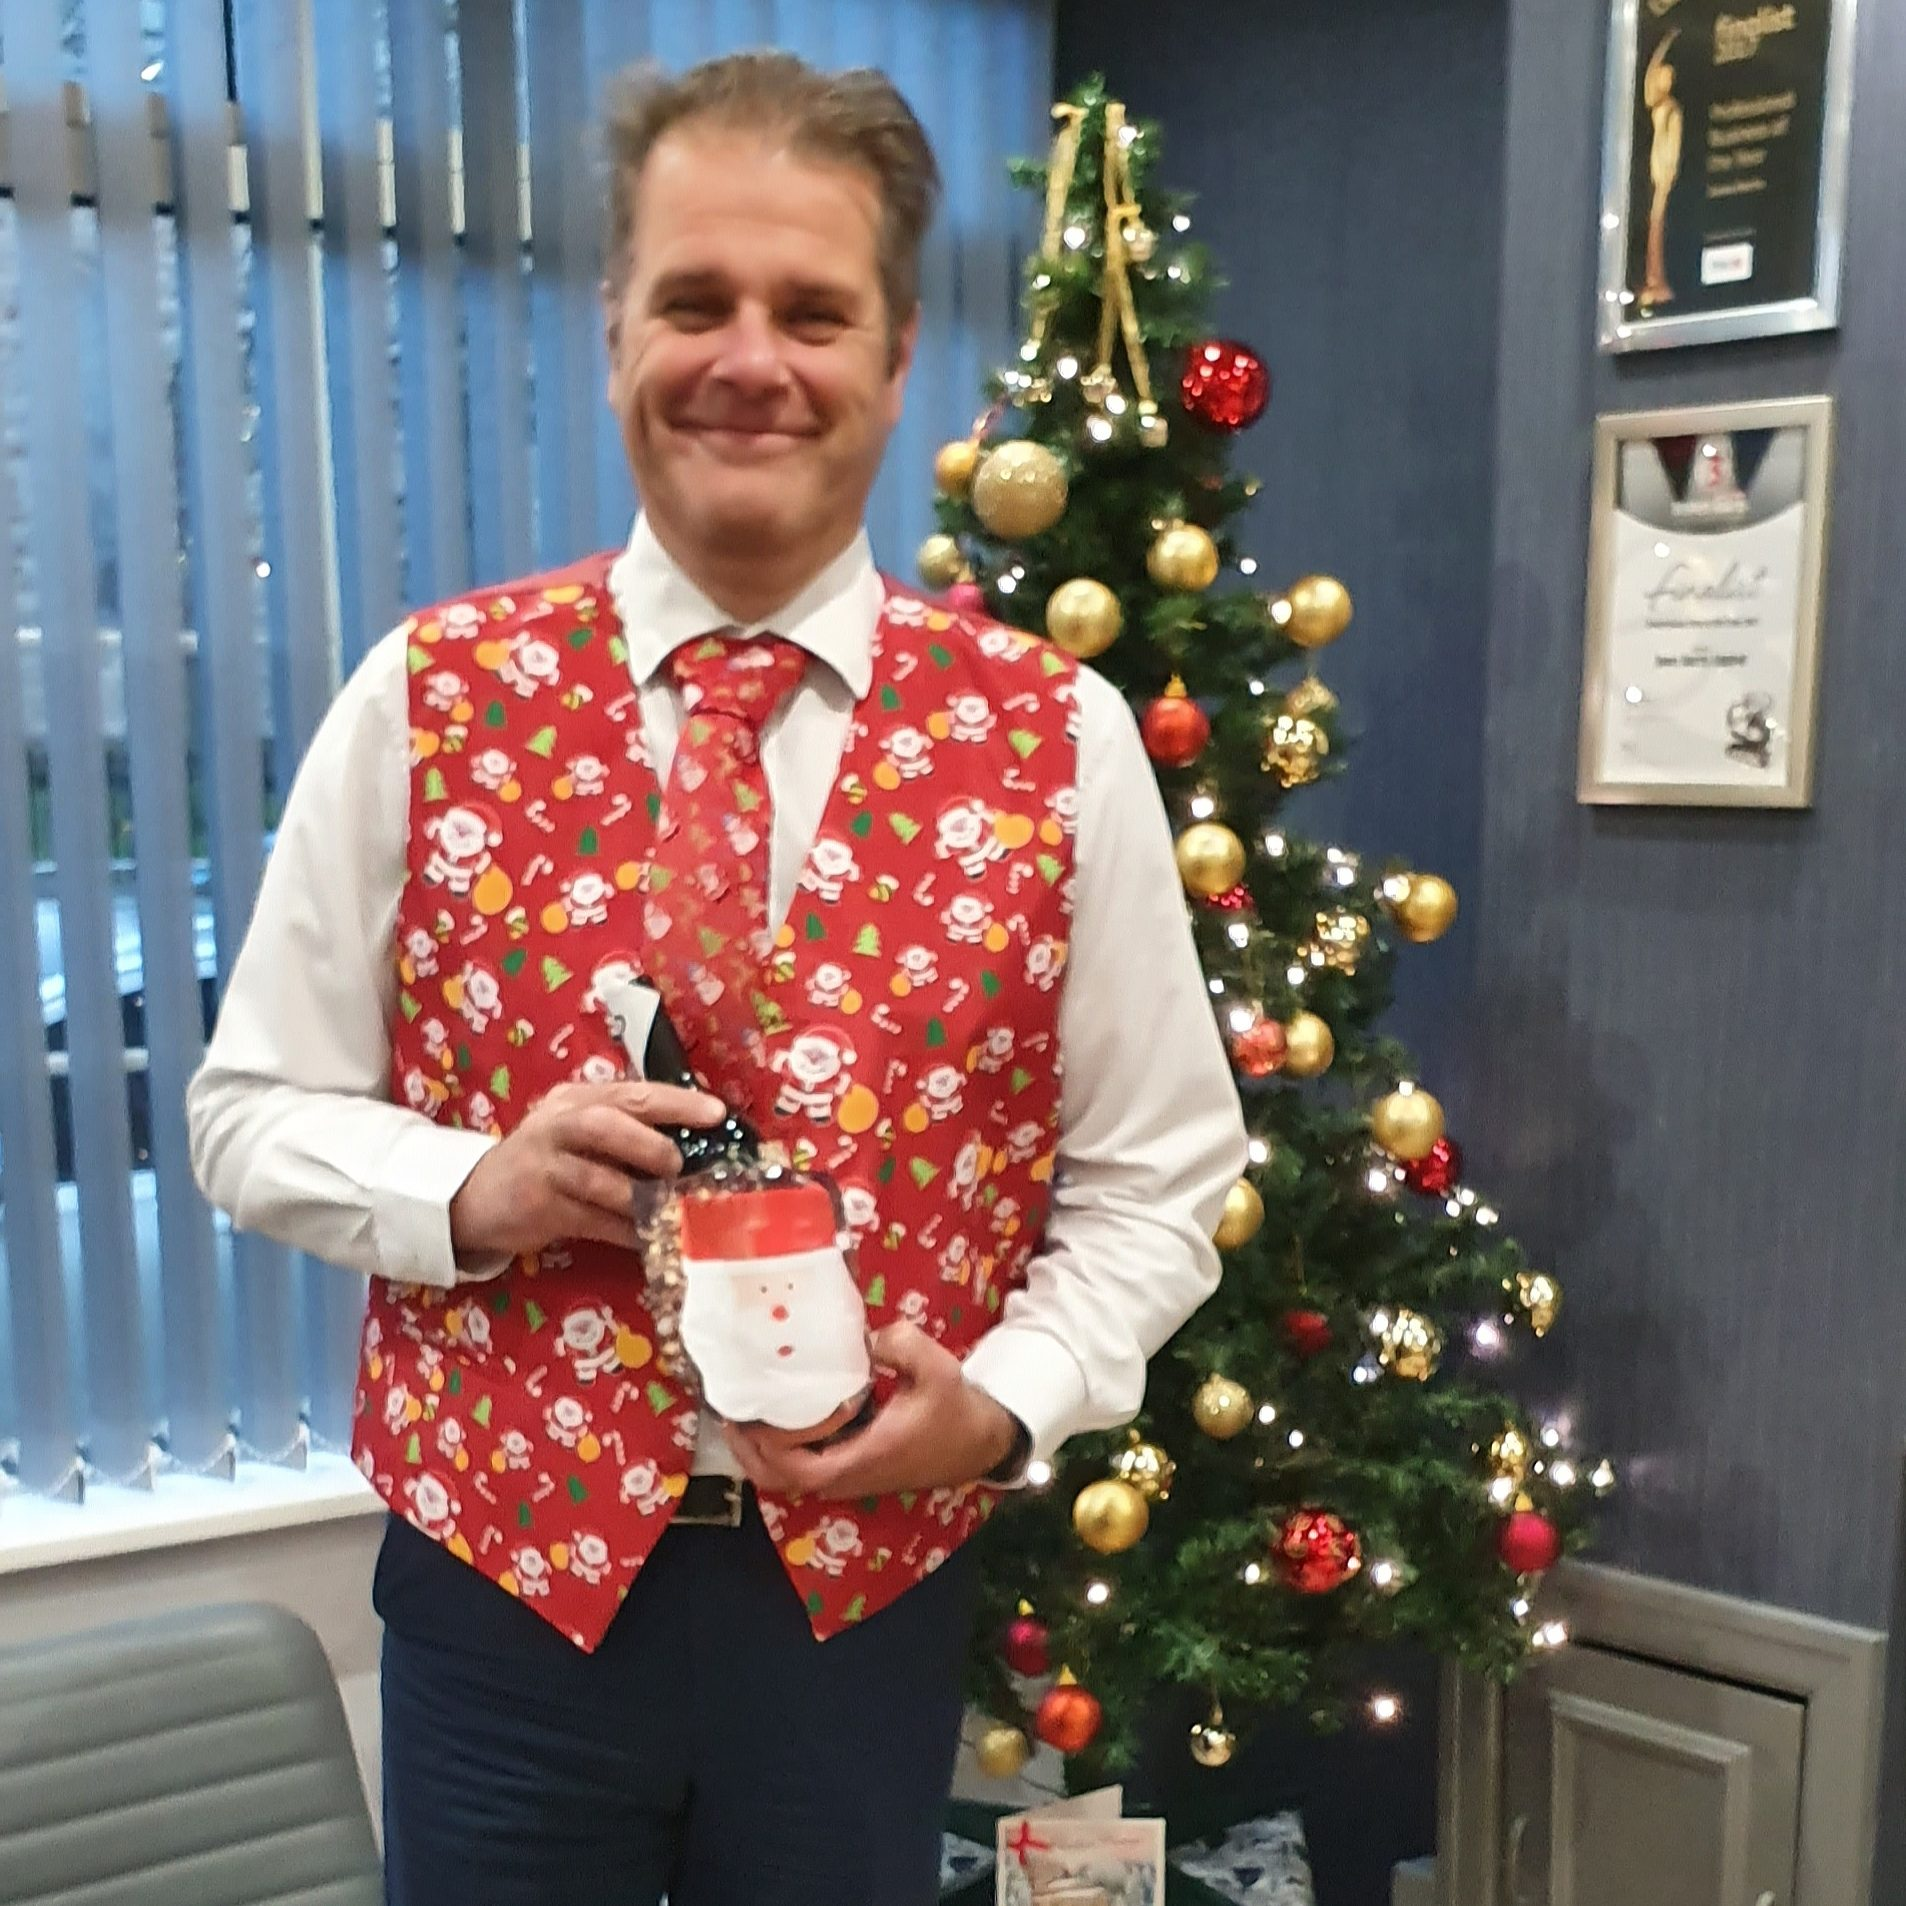 Christmas Jumper Day strikes again, here's Director Martin Wigley in festive dress!